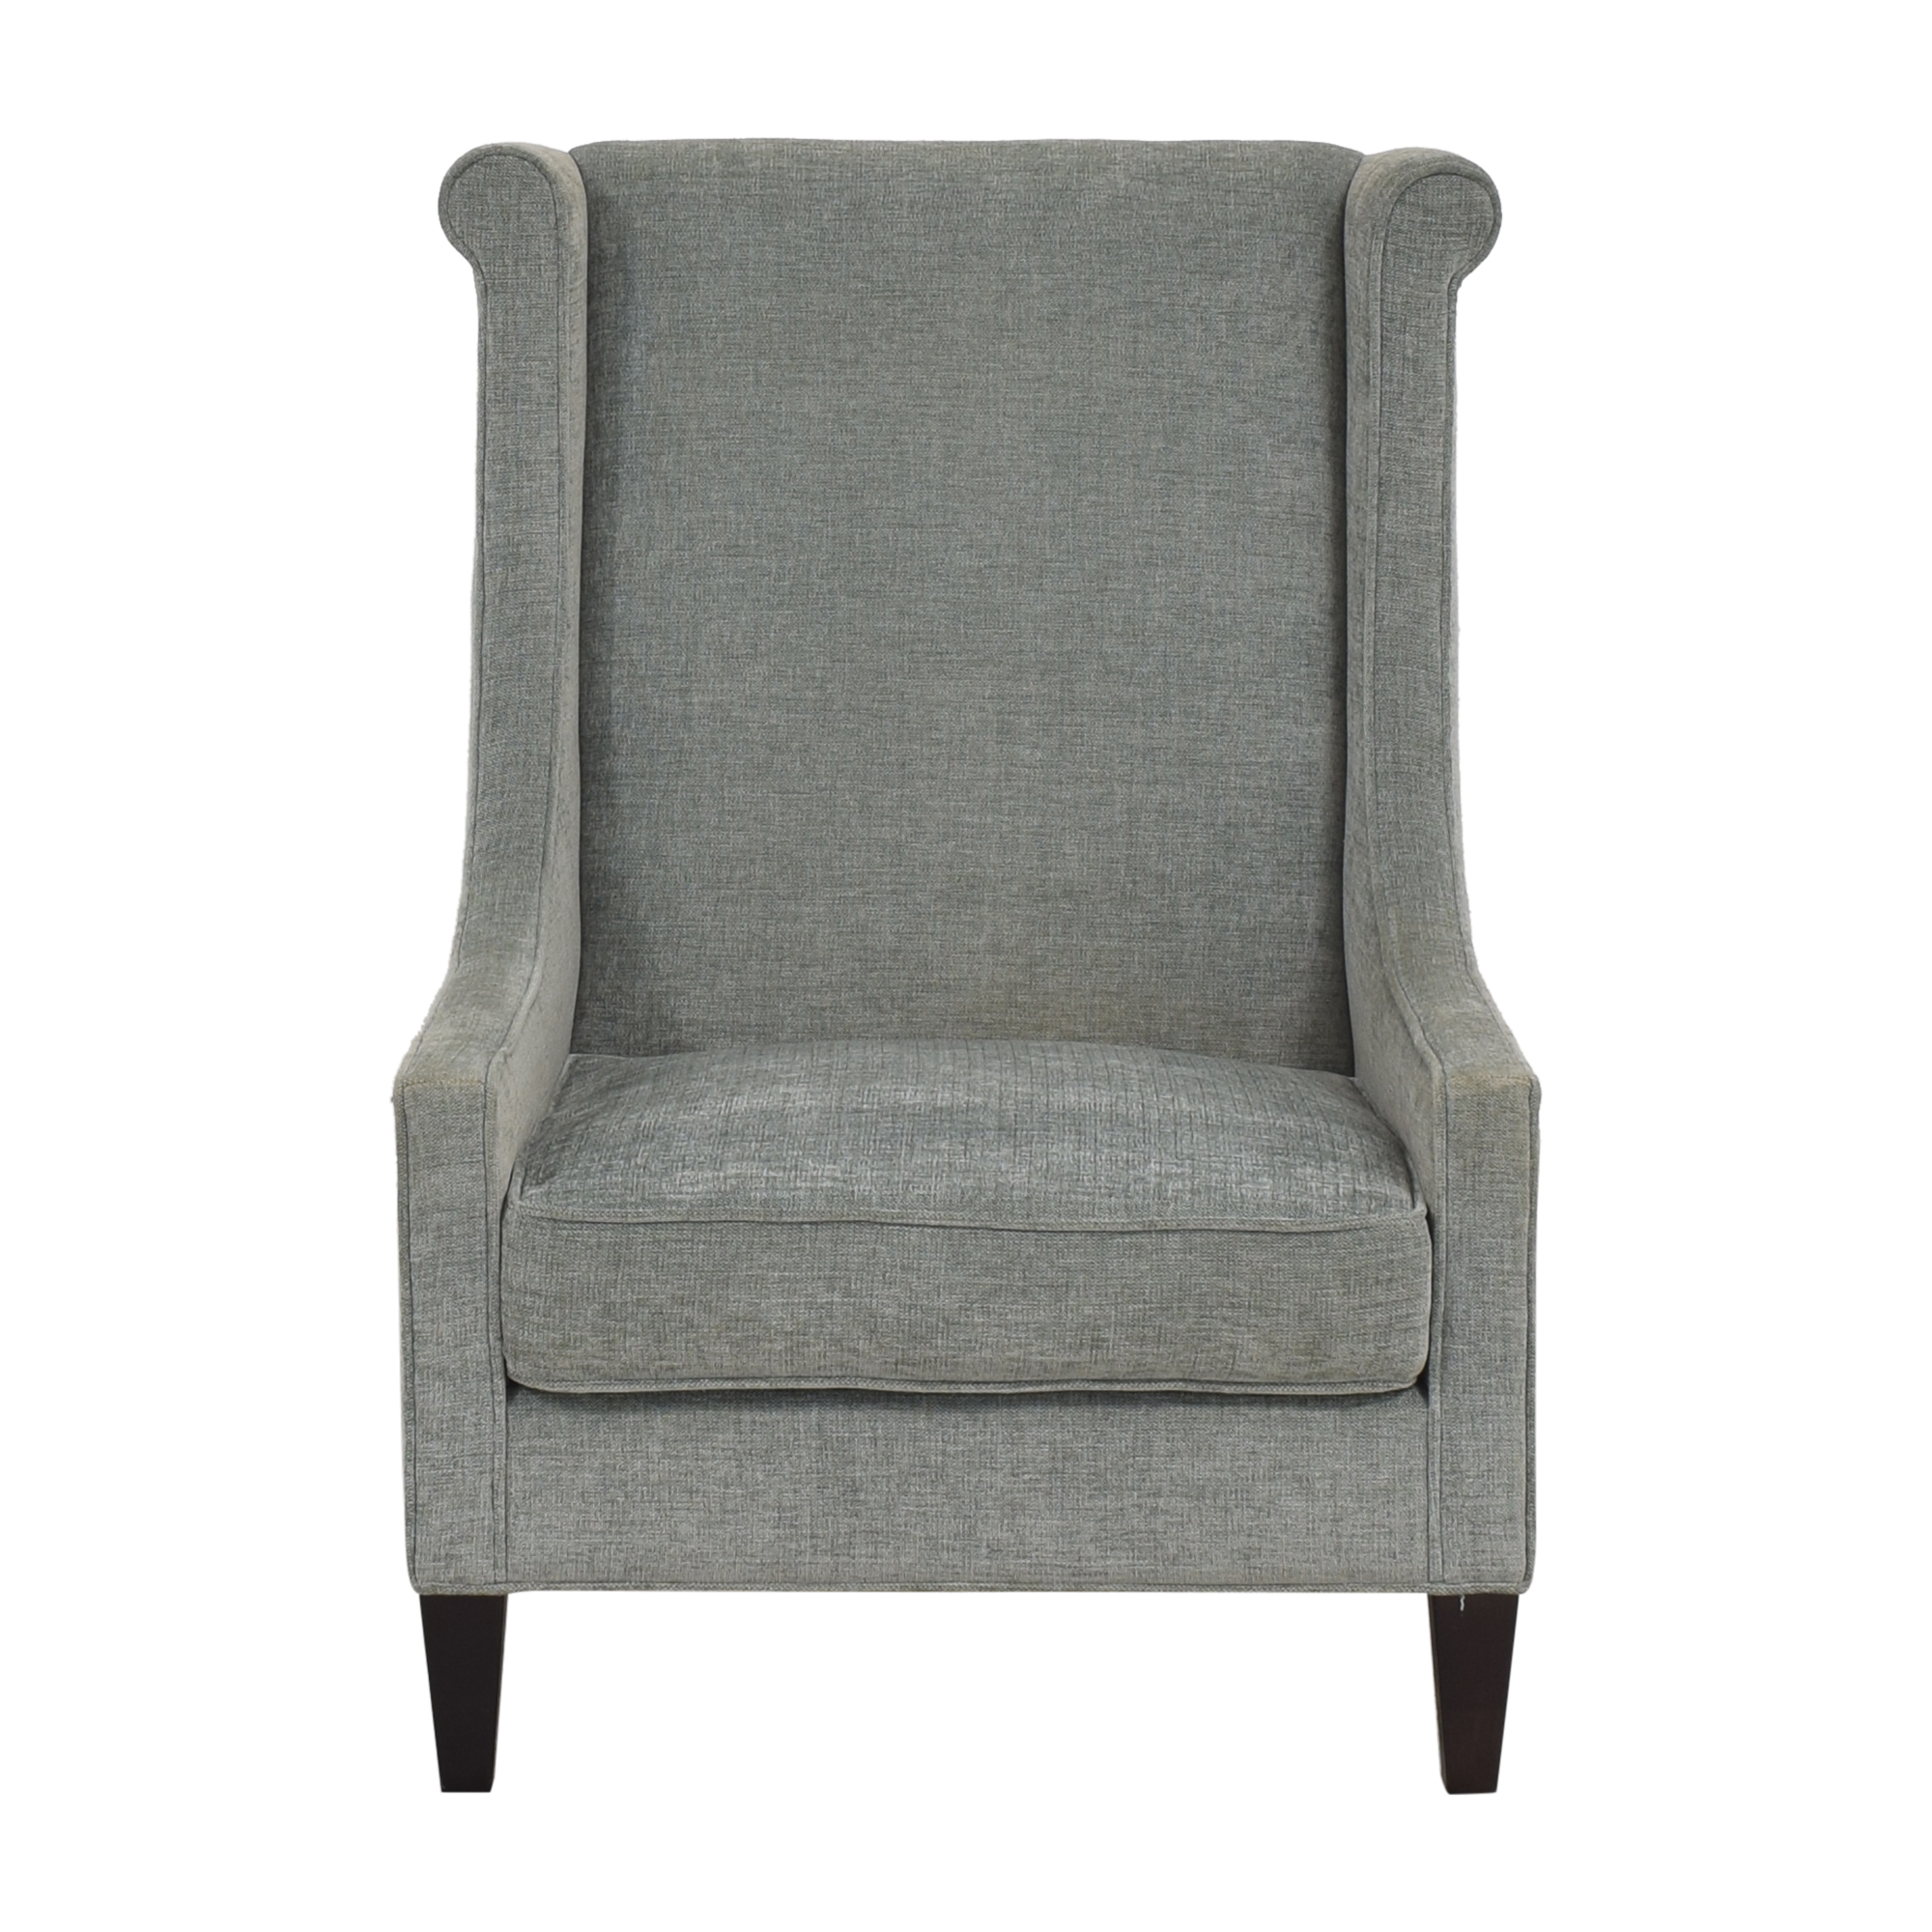 Custom Upholstered Accent Chair ct